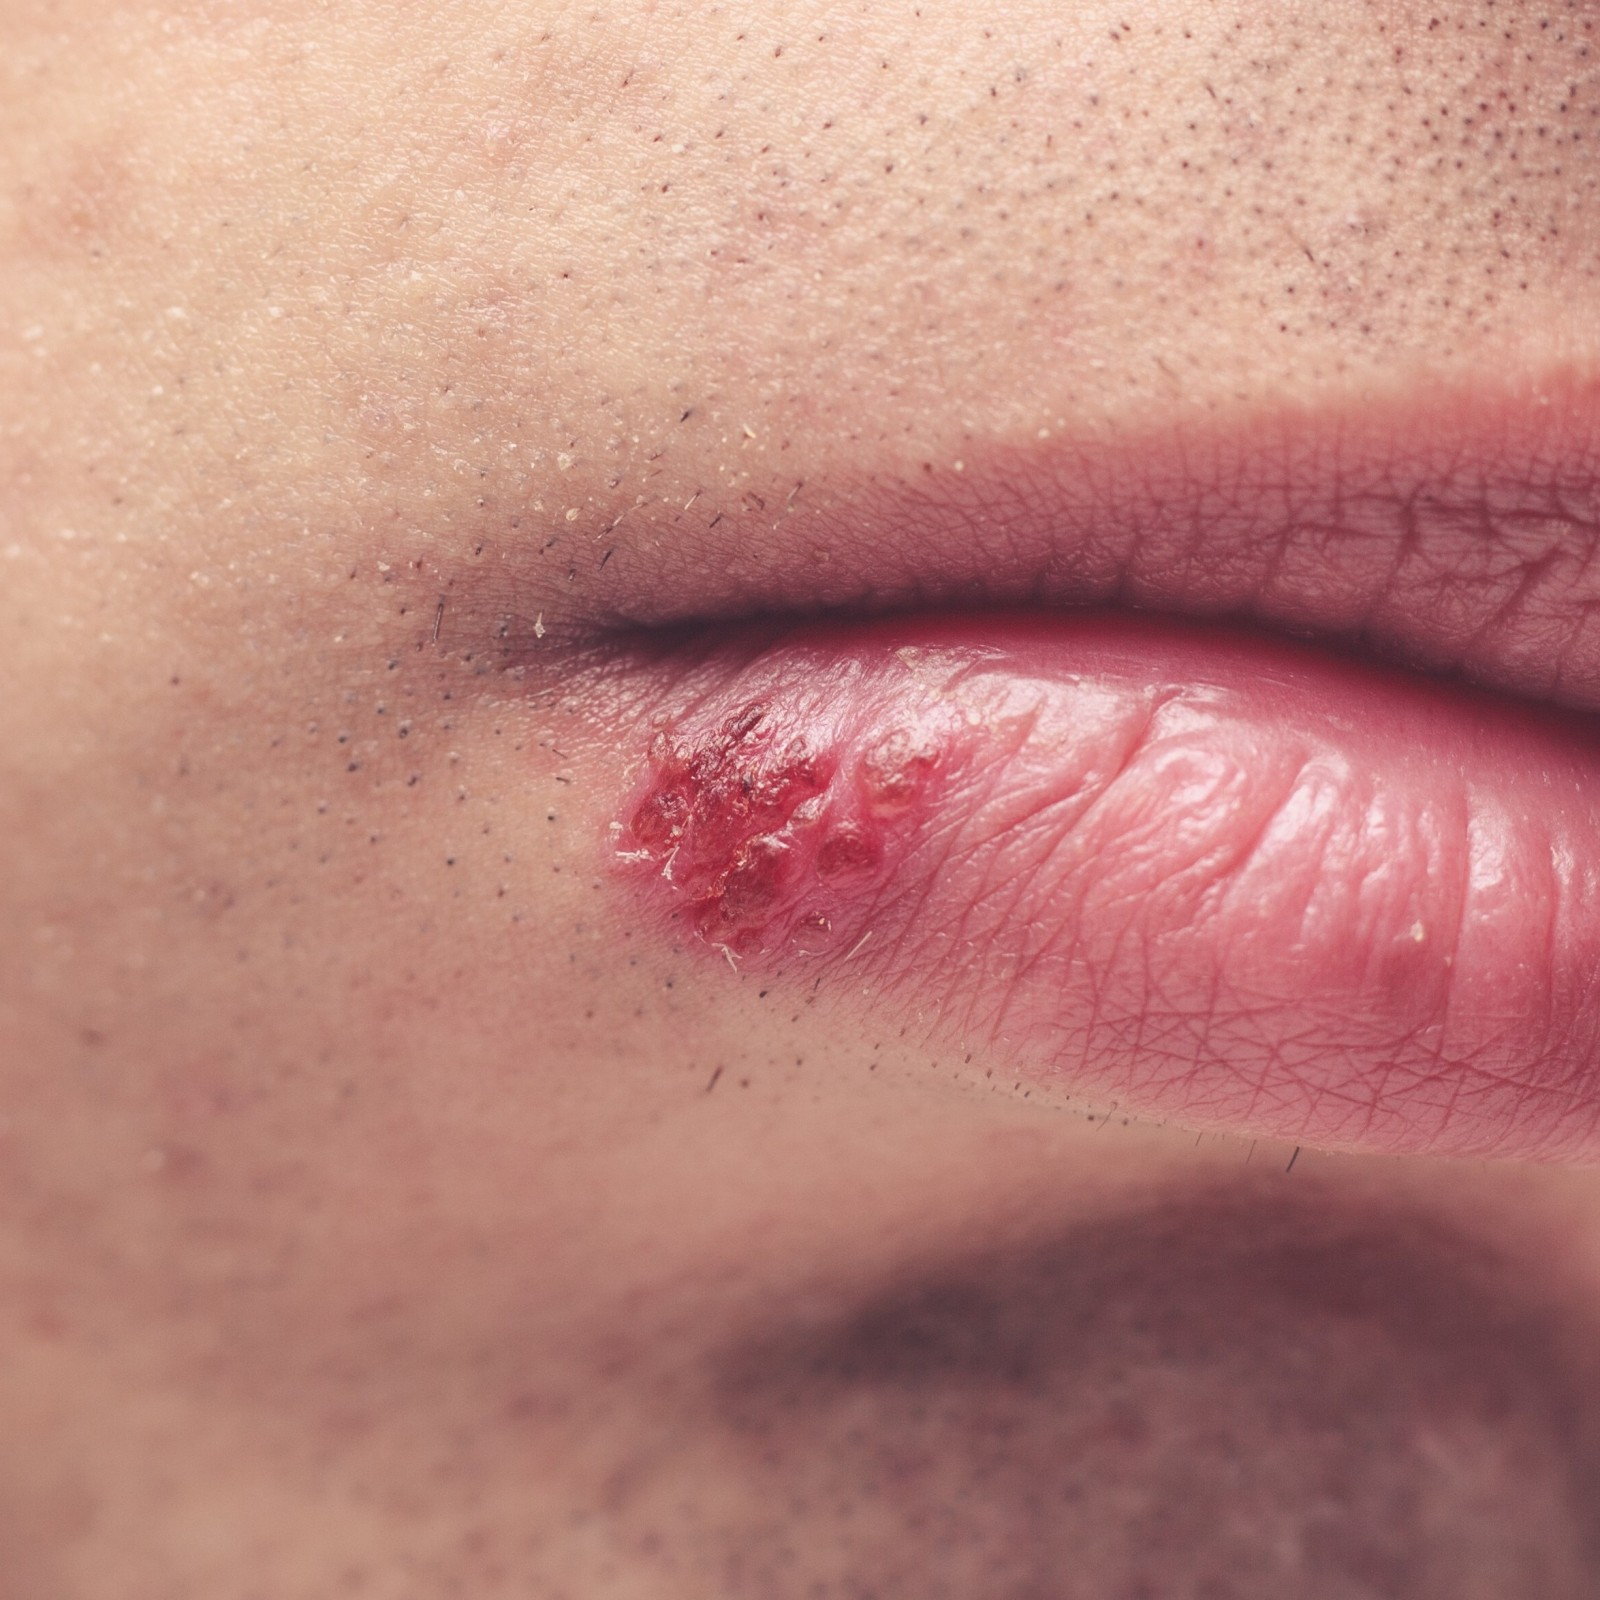 When to tell someone you have herpes